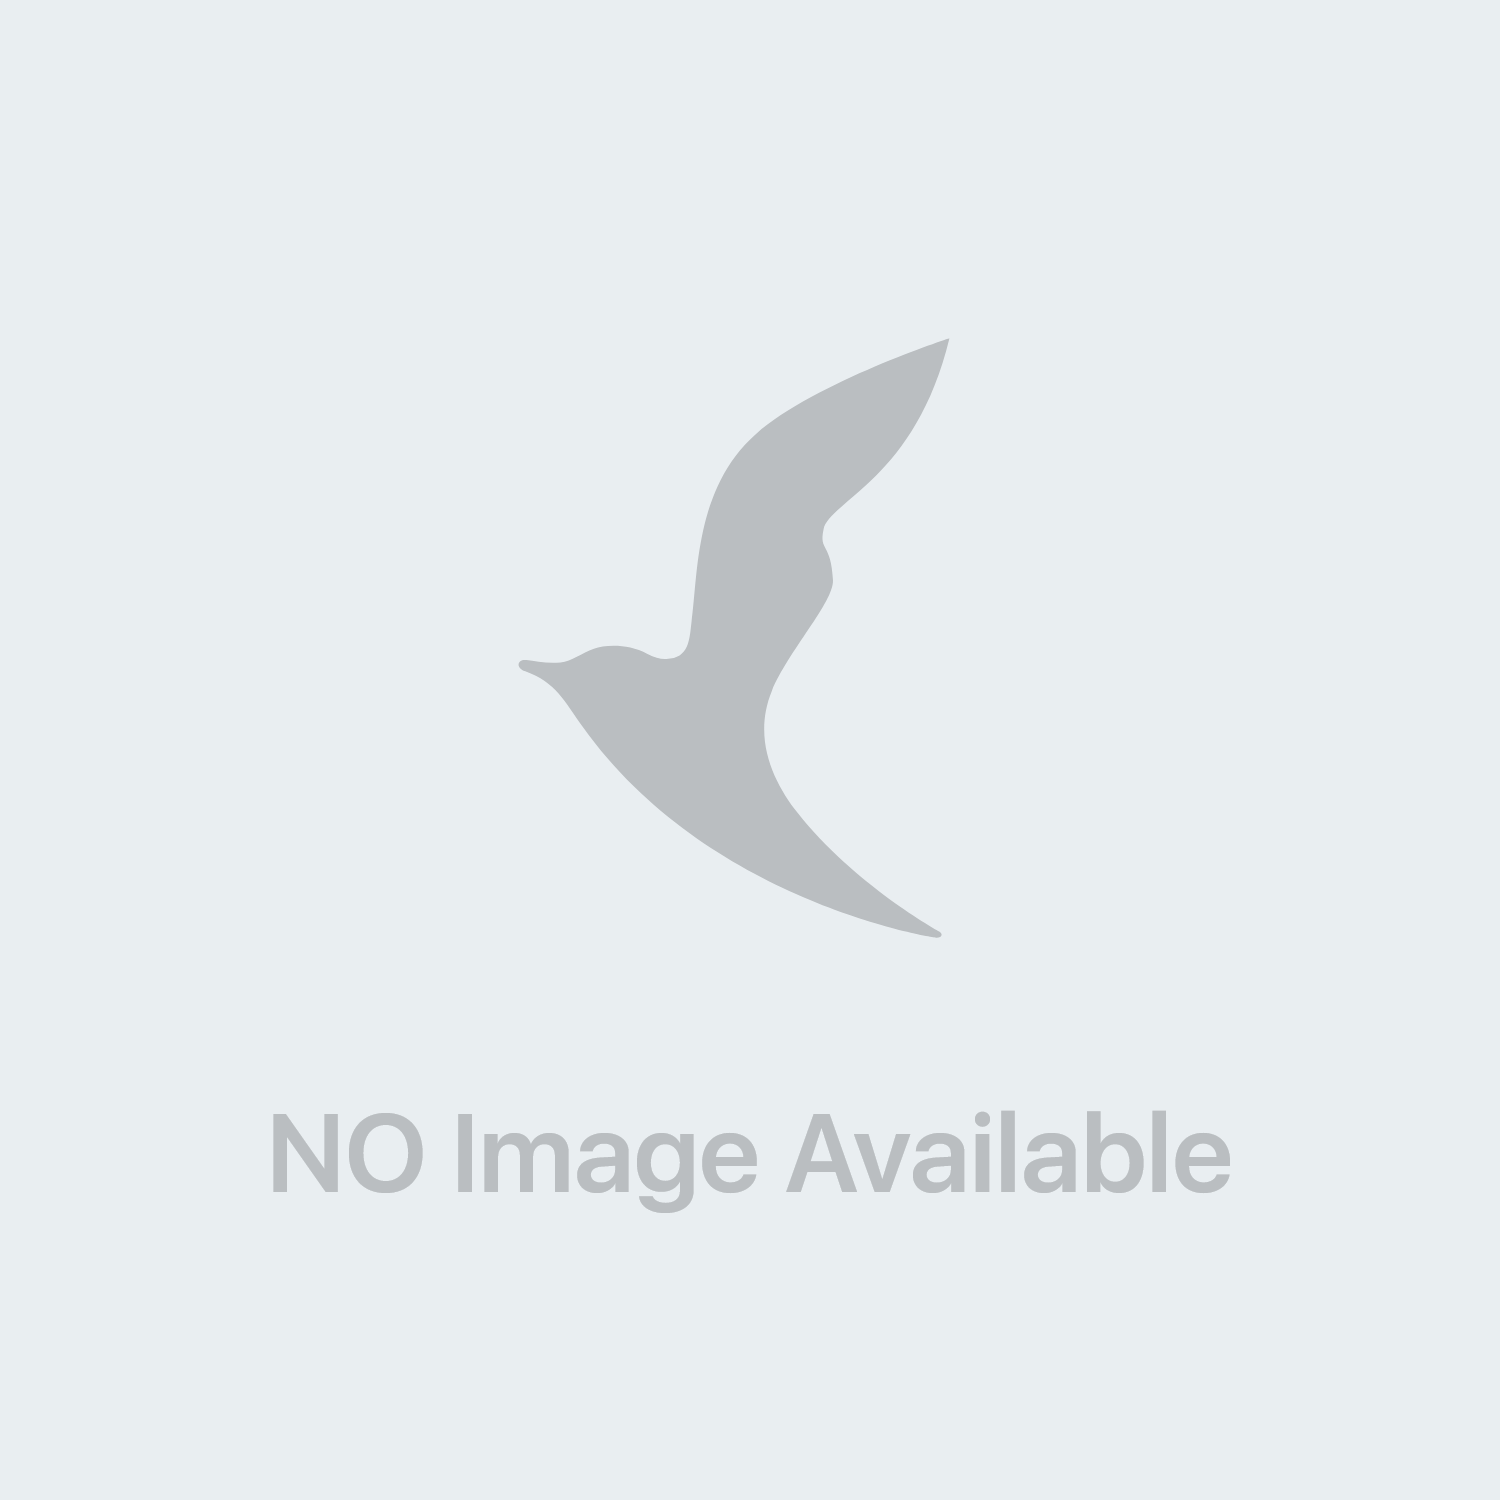 Fluirespira Professional Plus Kit Accessori per Aerosolterapia